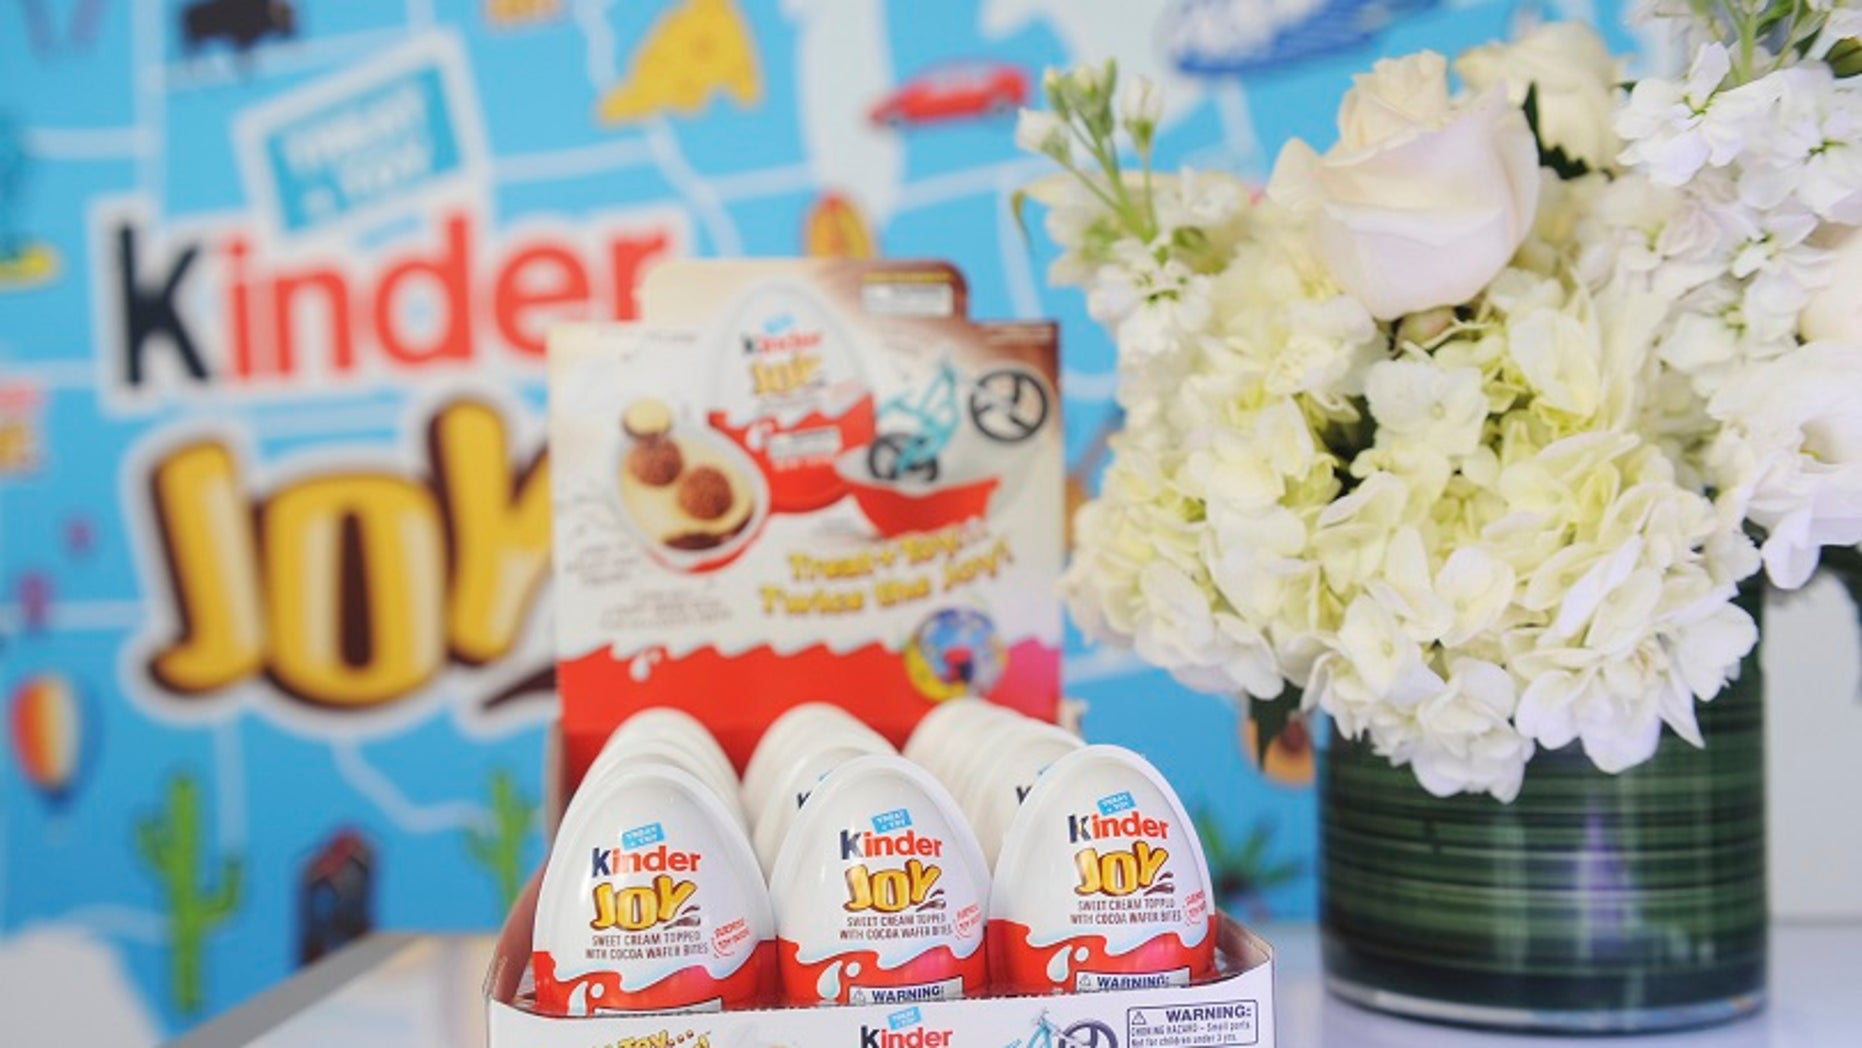 Kinder eggs will be sold in the U.S. for the first time.